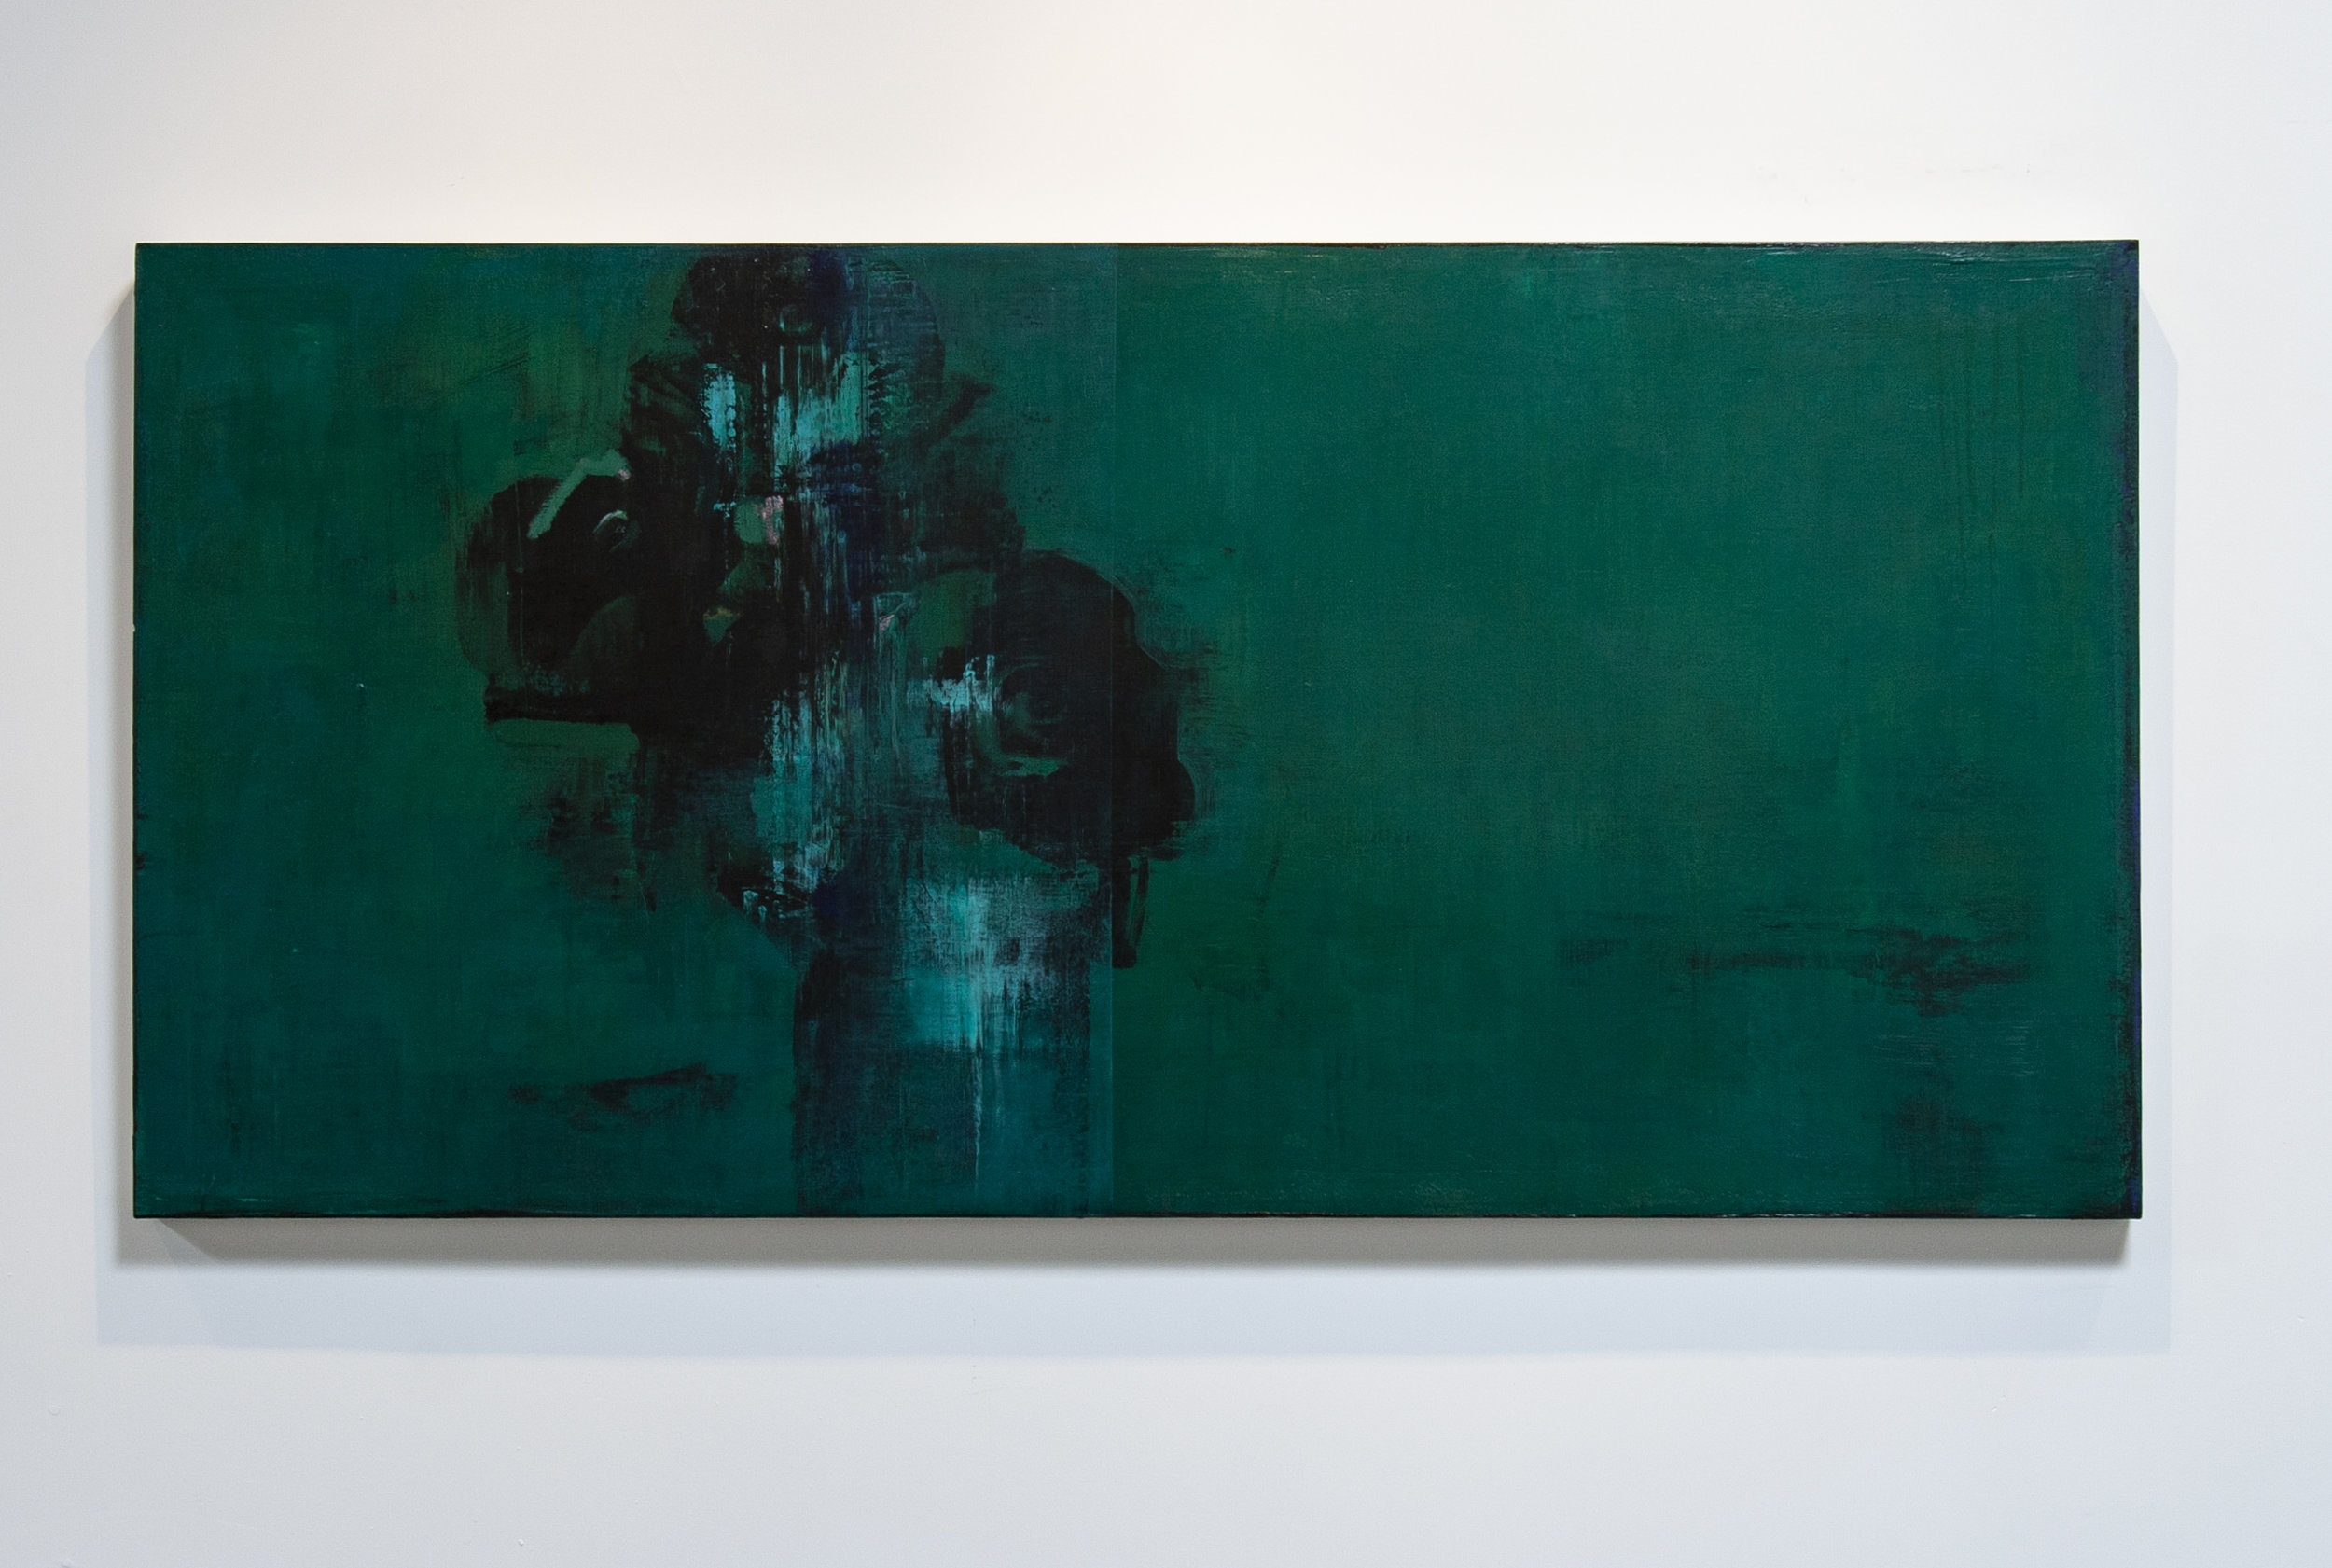 Daniel Brice, Polaroid Painting (Green), 2018, acrylic and oil on canvas, 38 x 78 inches